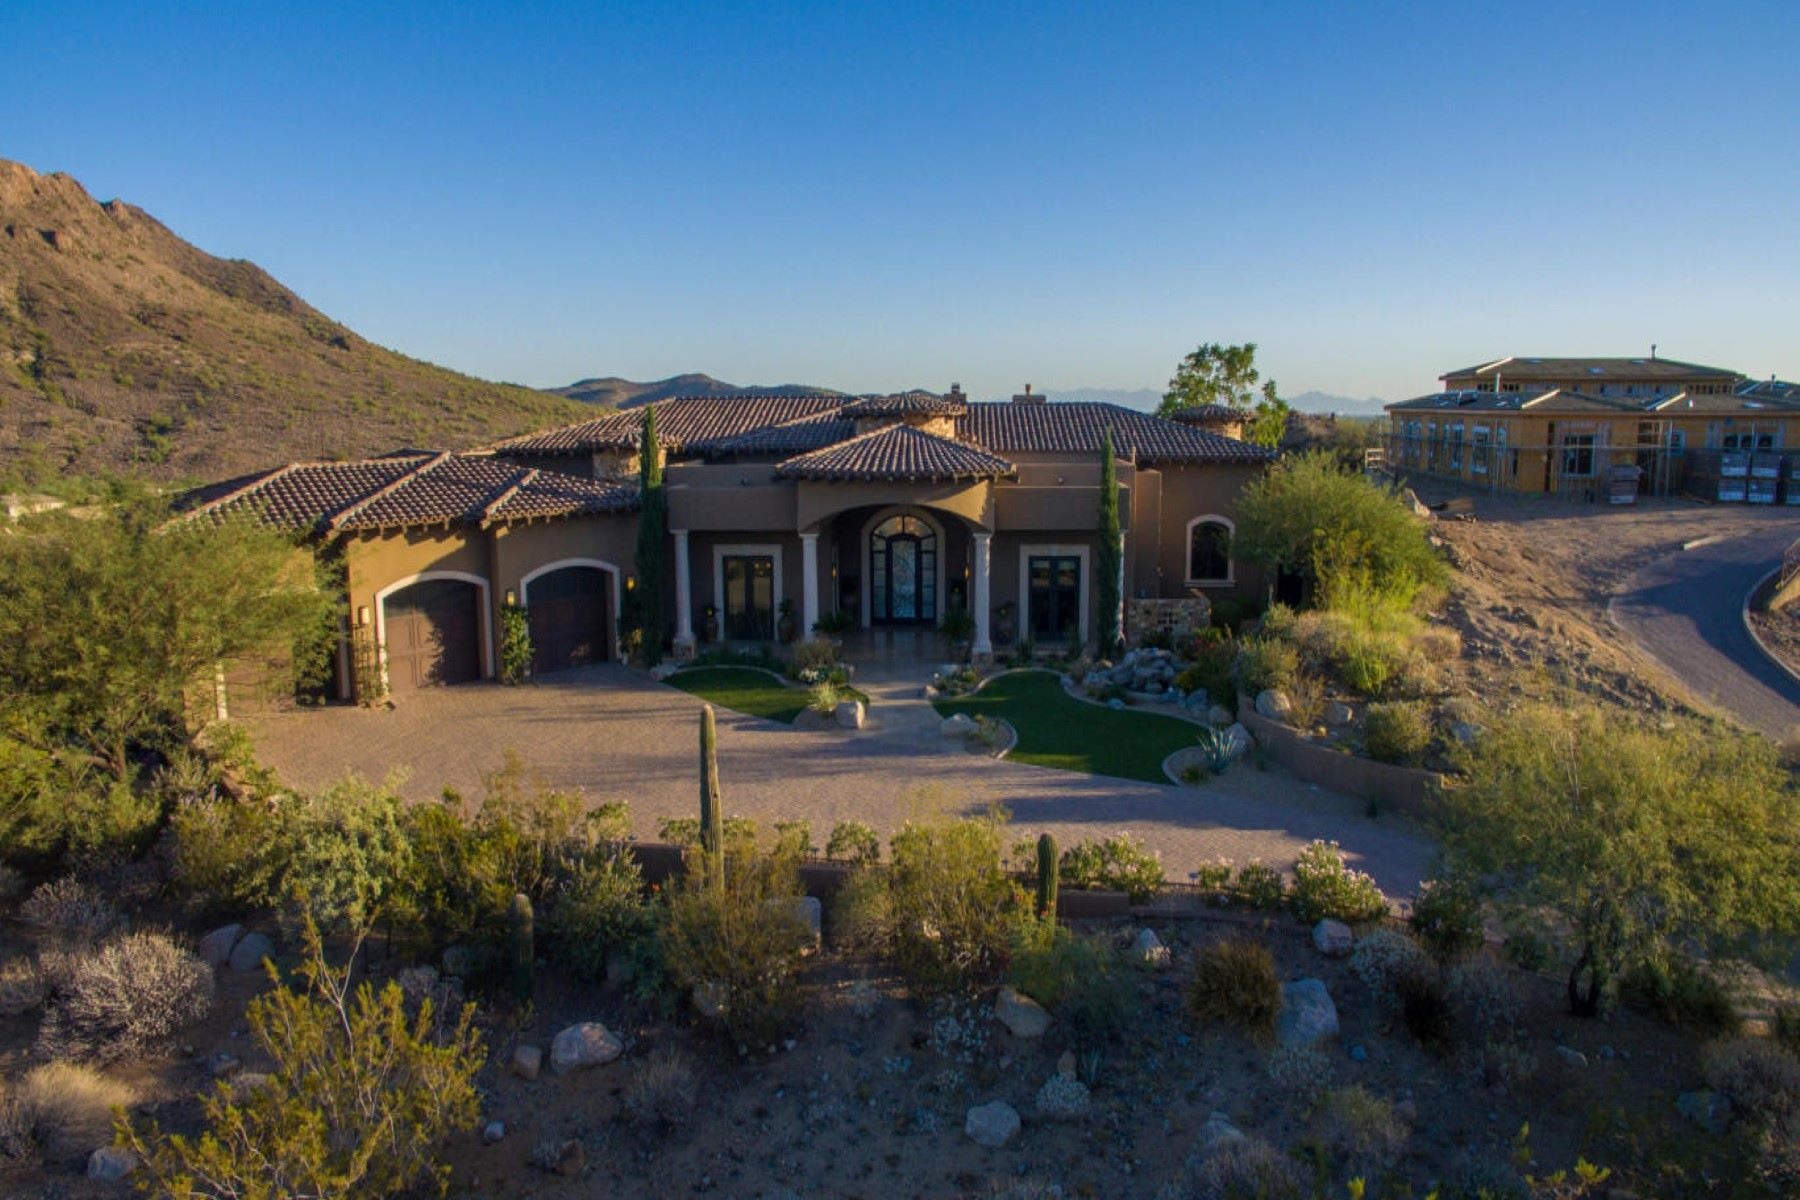 一戸建て のために 売買 アット Spectacular Home on 1.4 Acres in Gold Mountain Preserve 6531 W Gold Mountain Pass Phoenix, アリゾナ, 85083 アメリカ合衆国